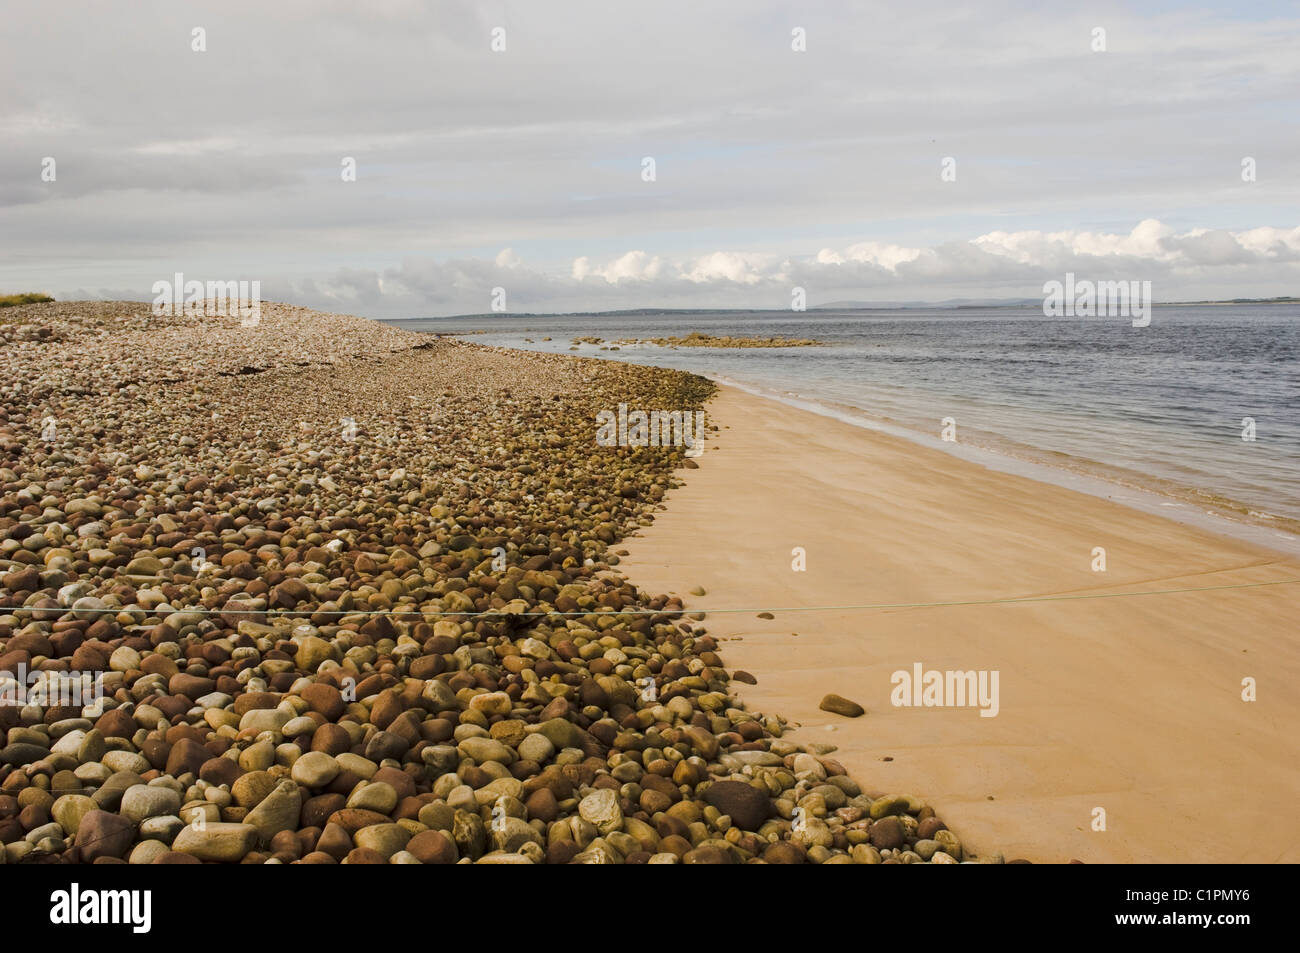 Republic of Ireland, County Mayo, Achill Island, Golden Strand - Stock Image